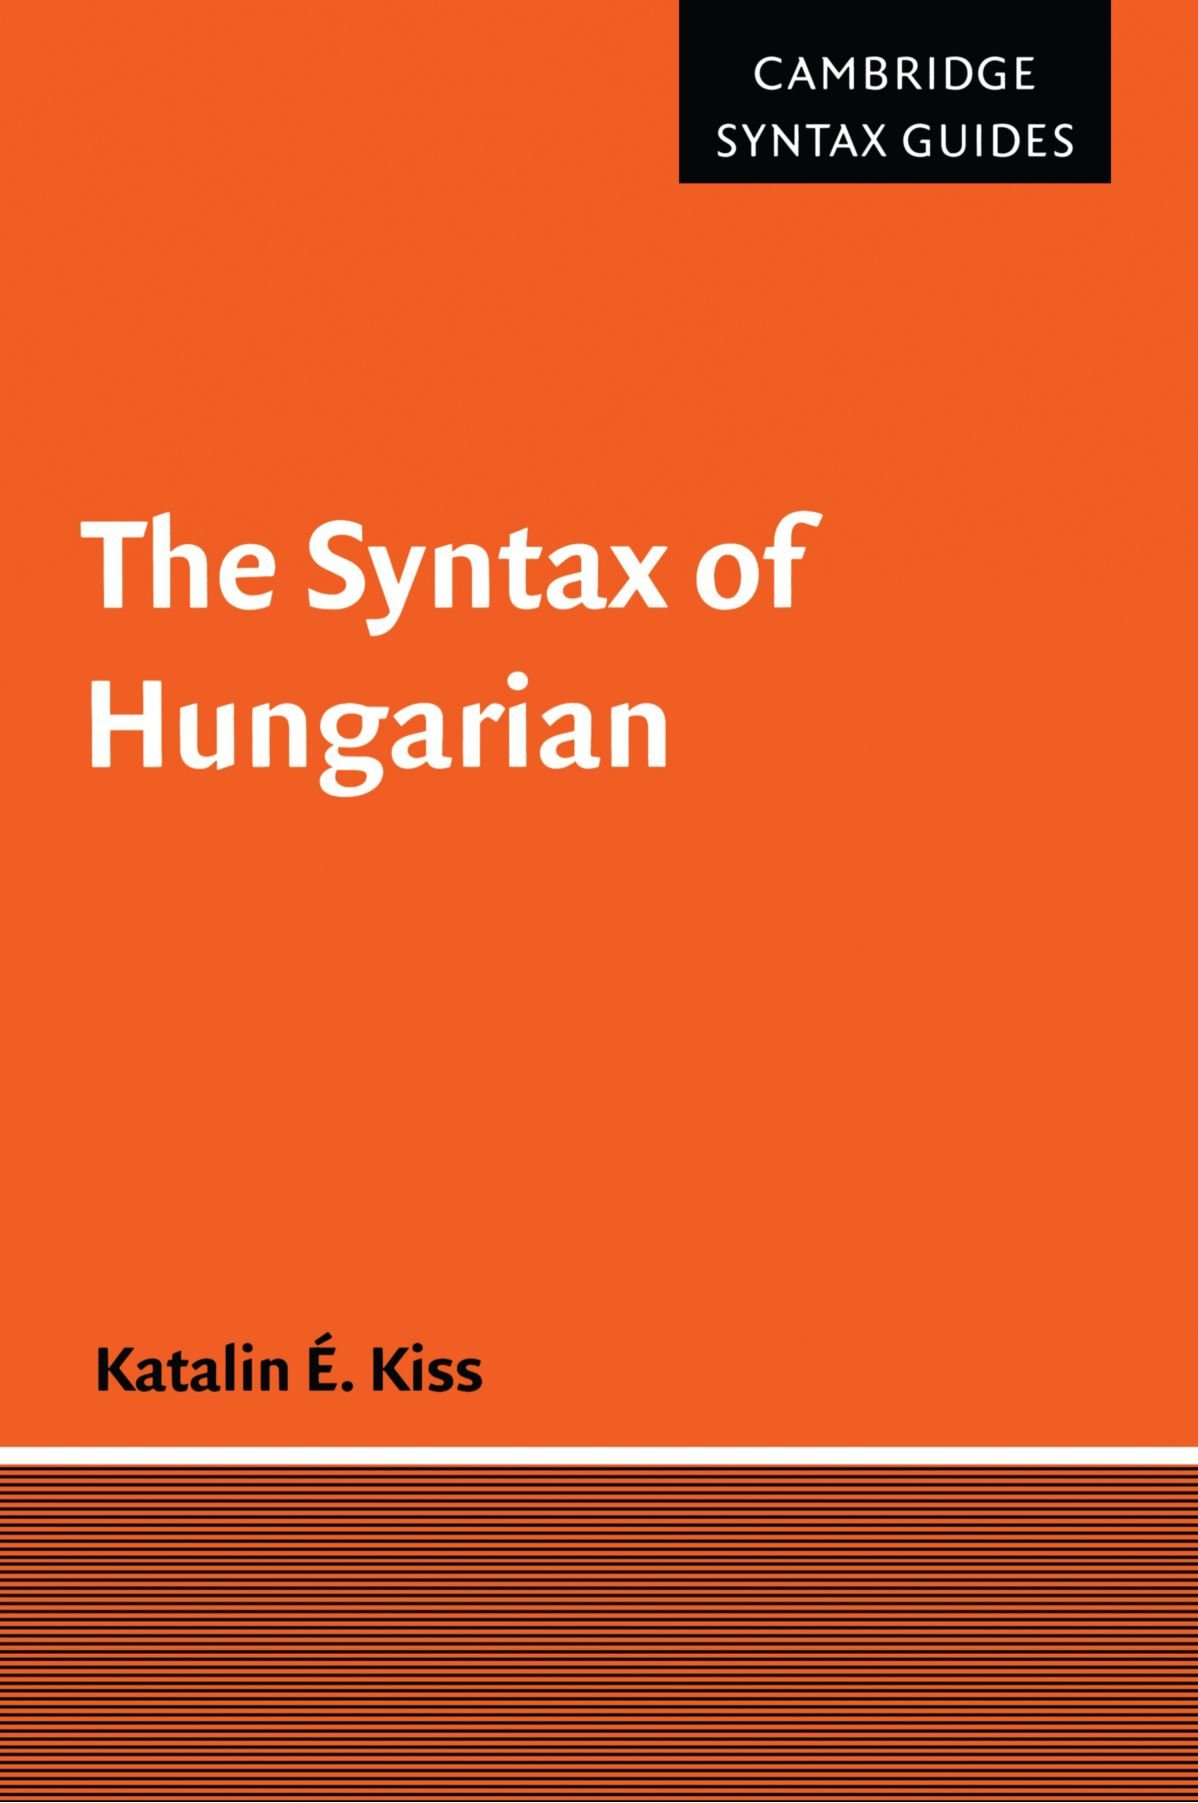 The Syntax Of Hungarian  Cambridge Syntax Guides